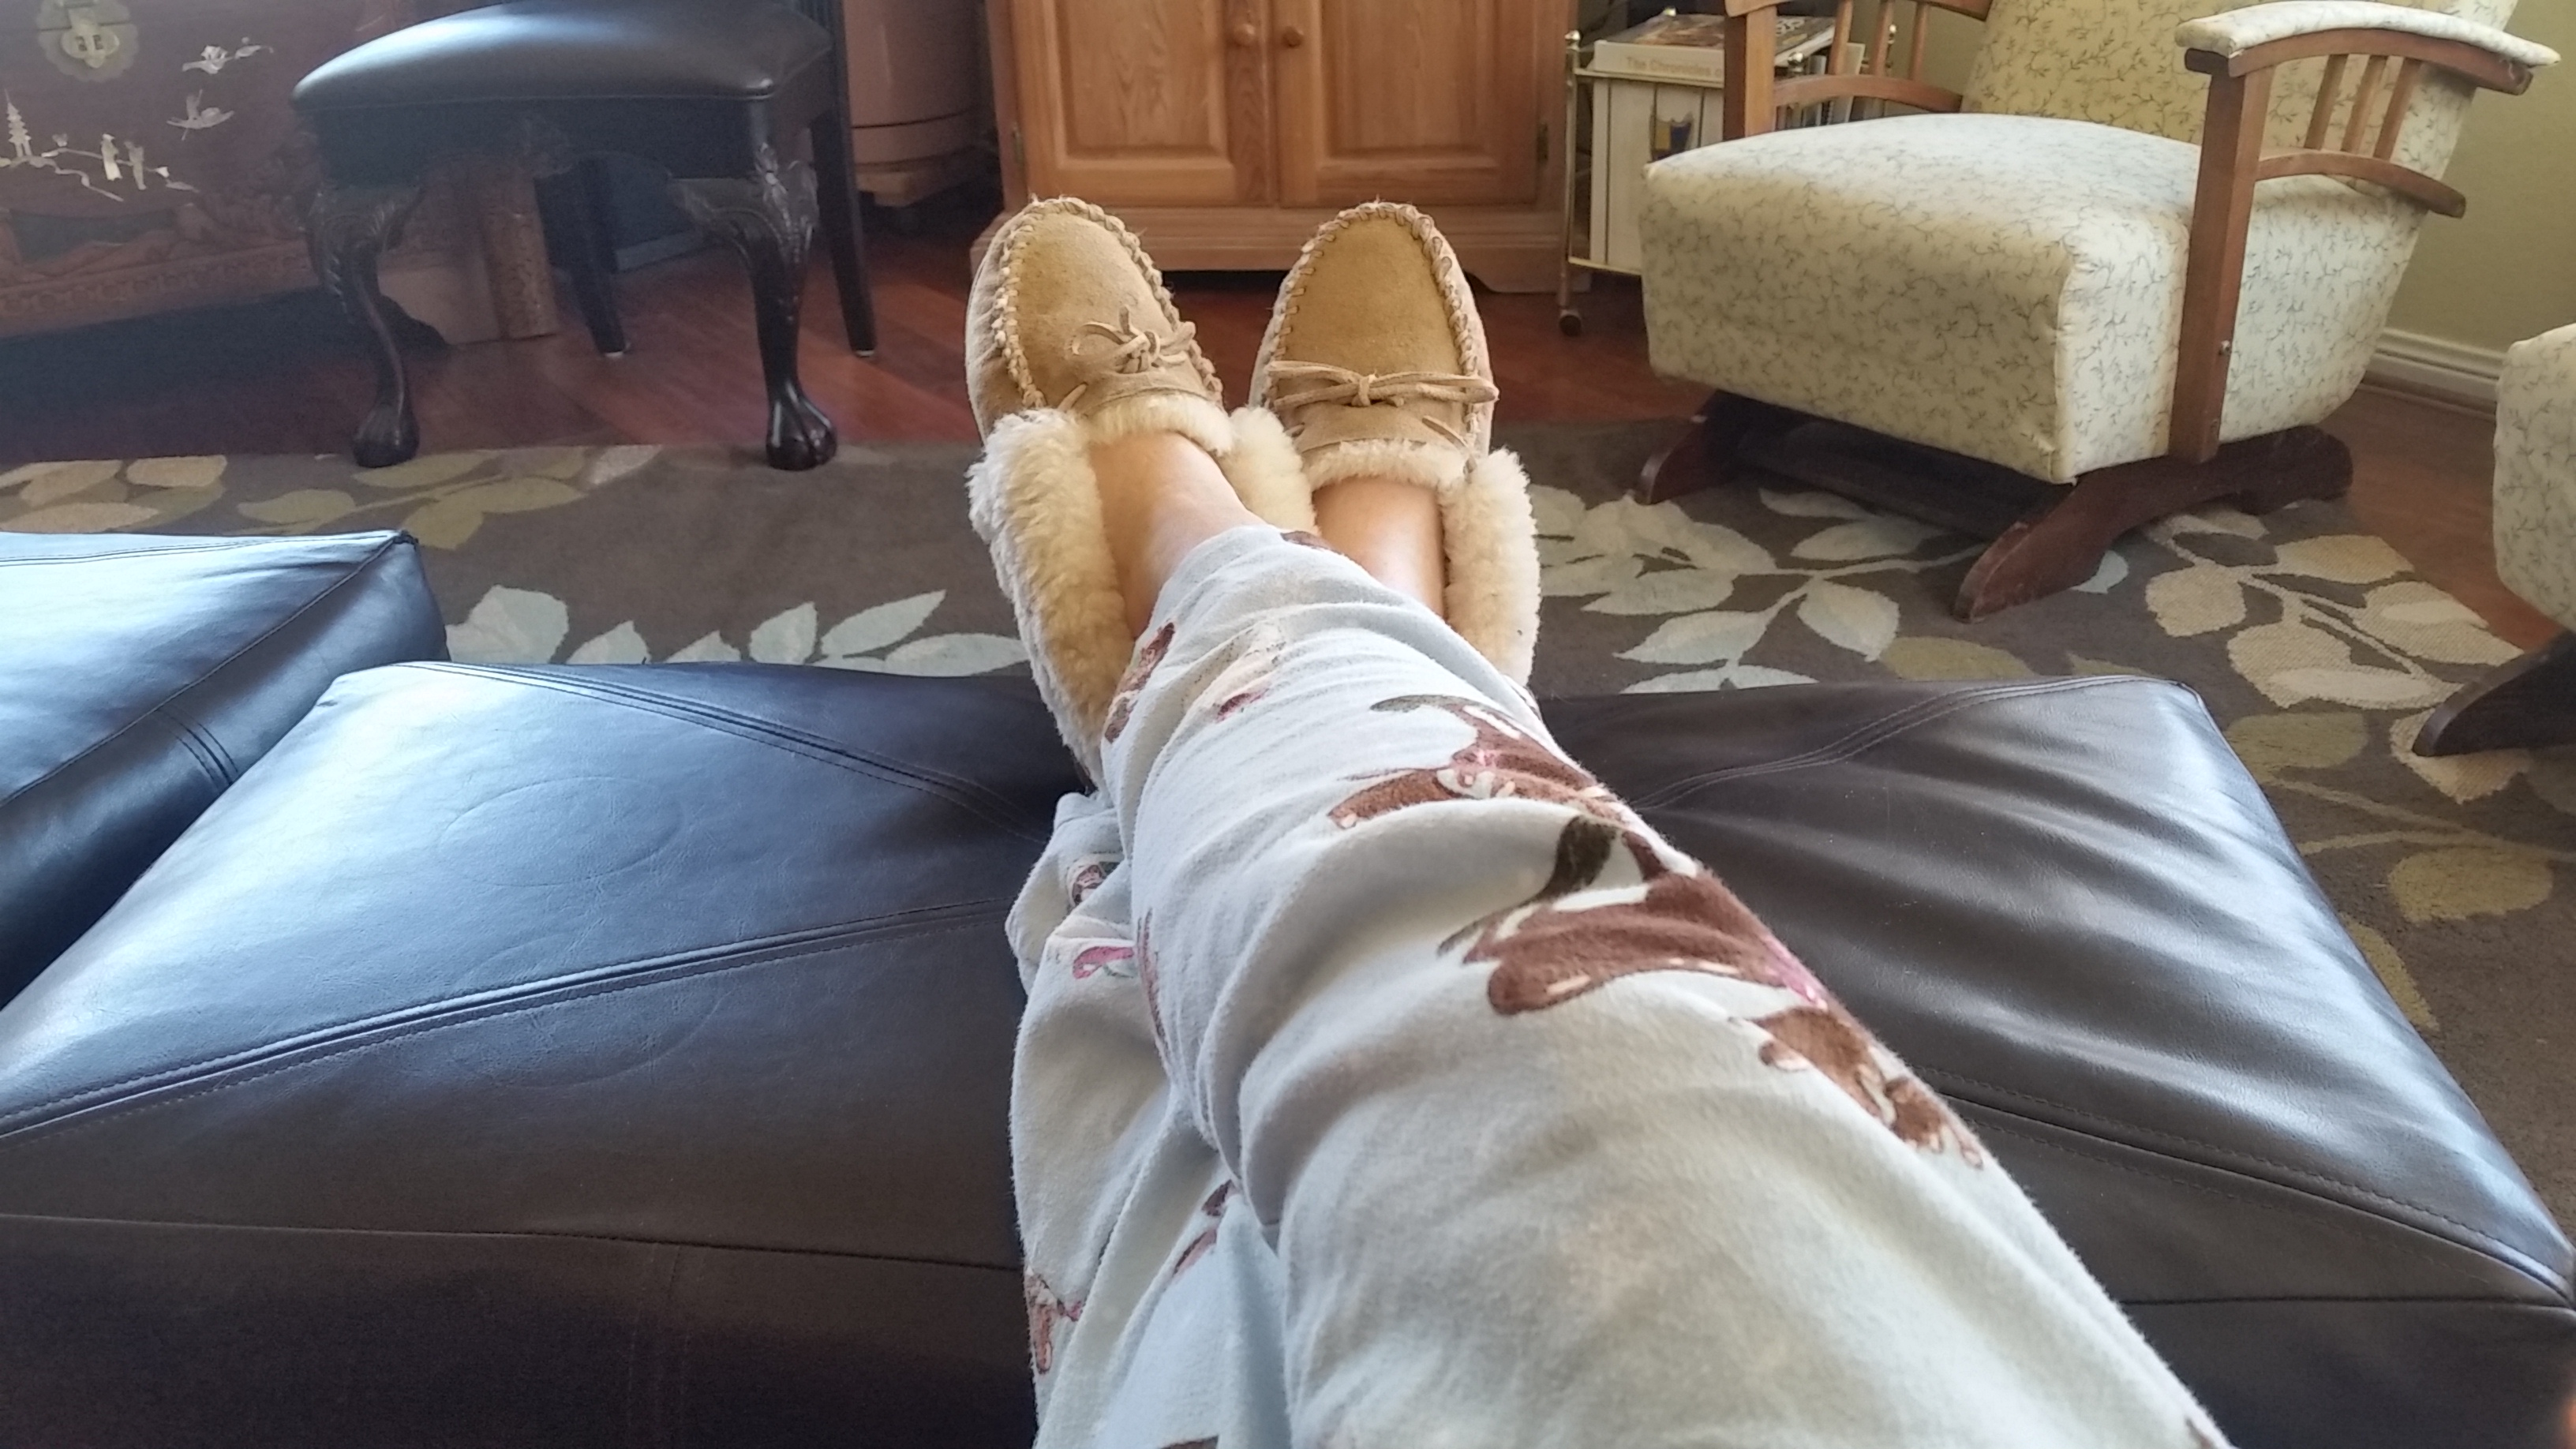 Still wearing pajamas and slippers at three in the afternoon.